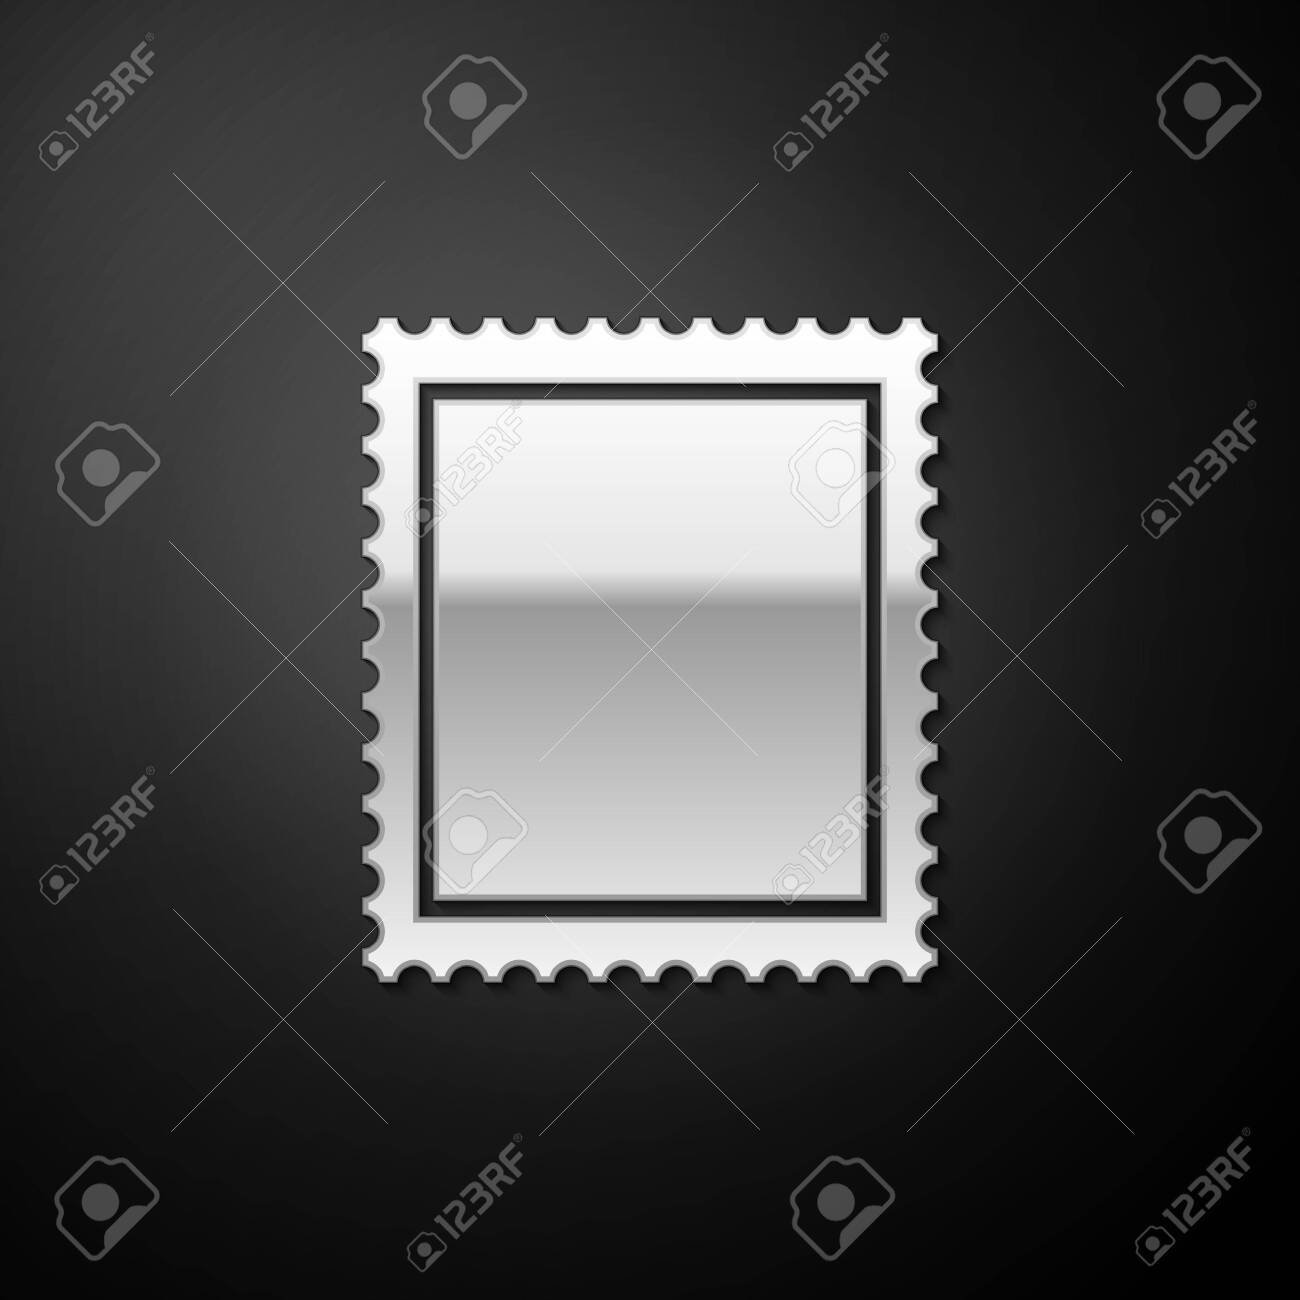 Silver Postal stamp icon isolated on black background. Long shadow style. Vector - 151742963